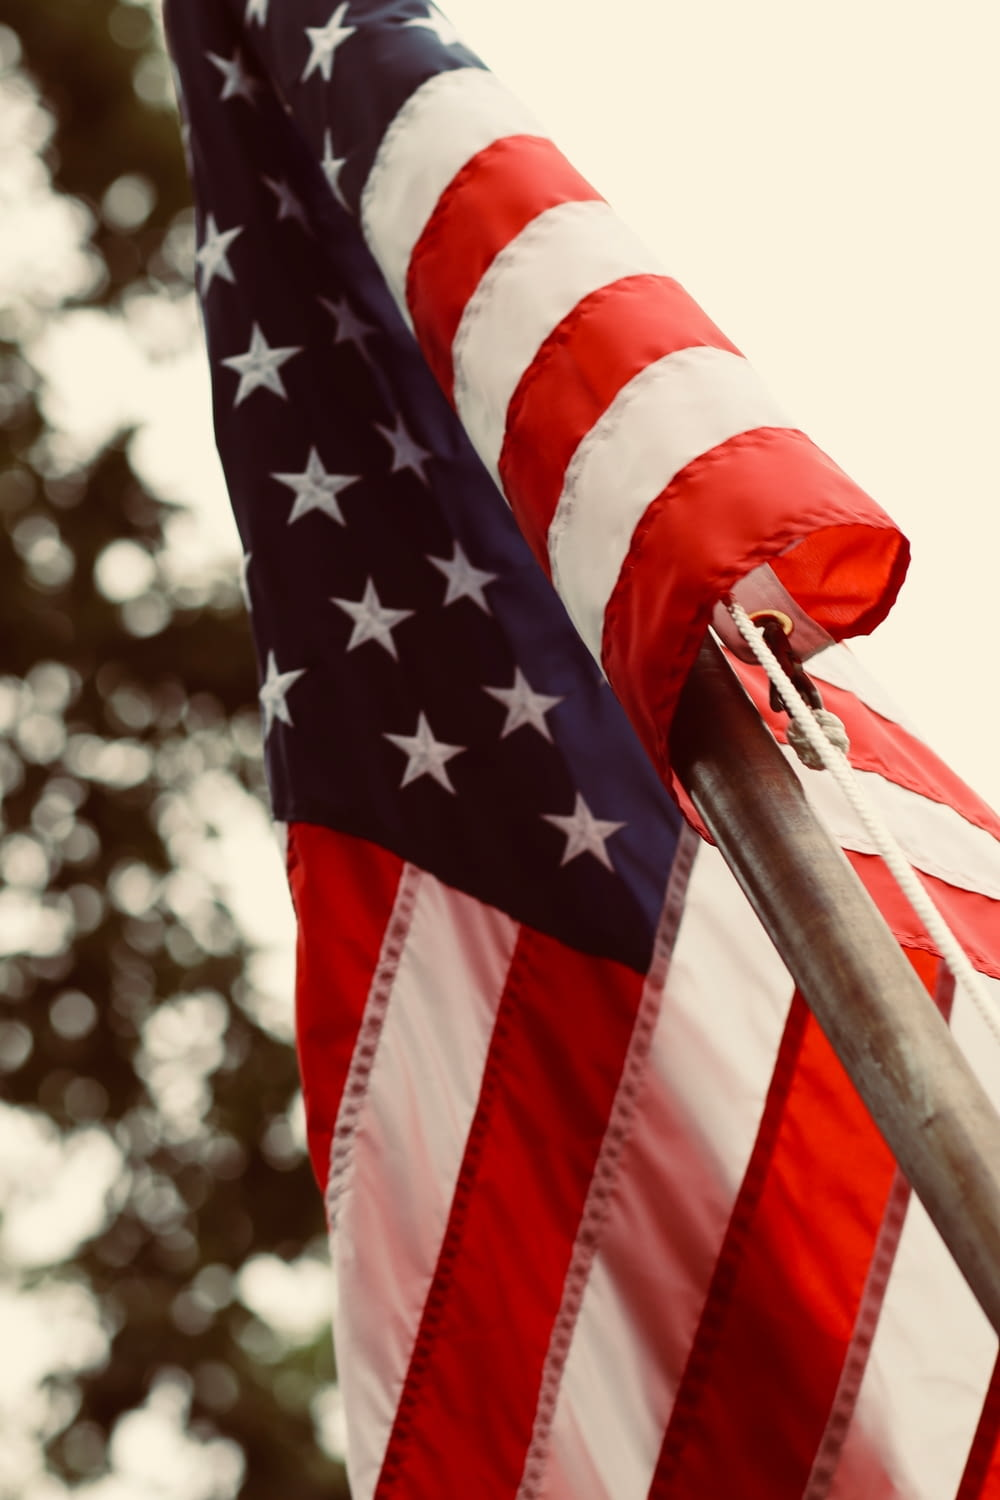 showing American flag